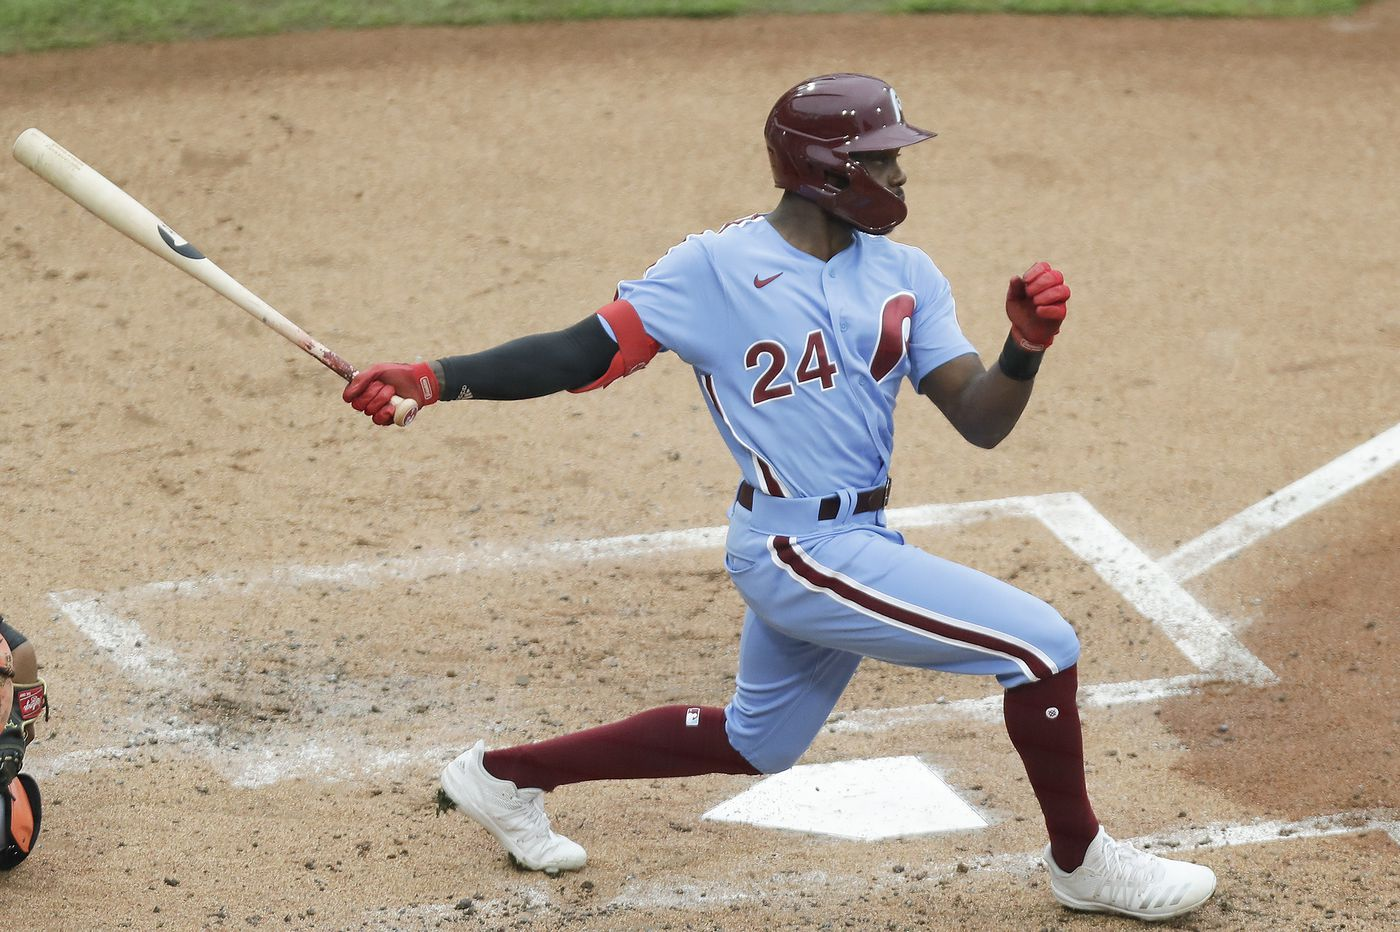 Phillies' Roman Quinn awaiting results of COVID-19 tests, placed on injured list